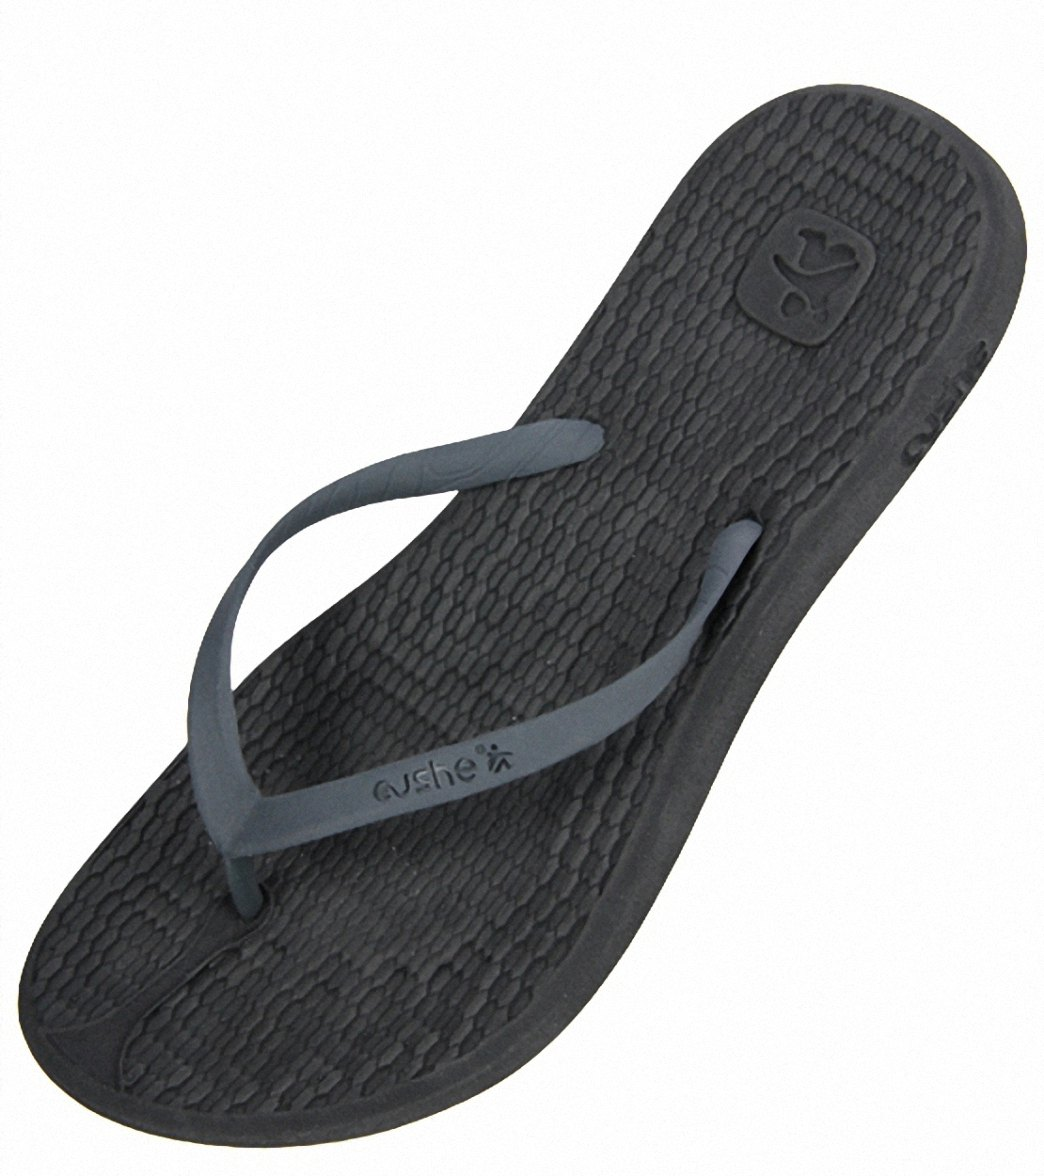 b9003593a8e6 Cushe Women s Manuka Feet Flip Flop at SwimOutlet.com